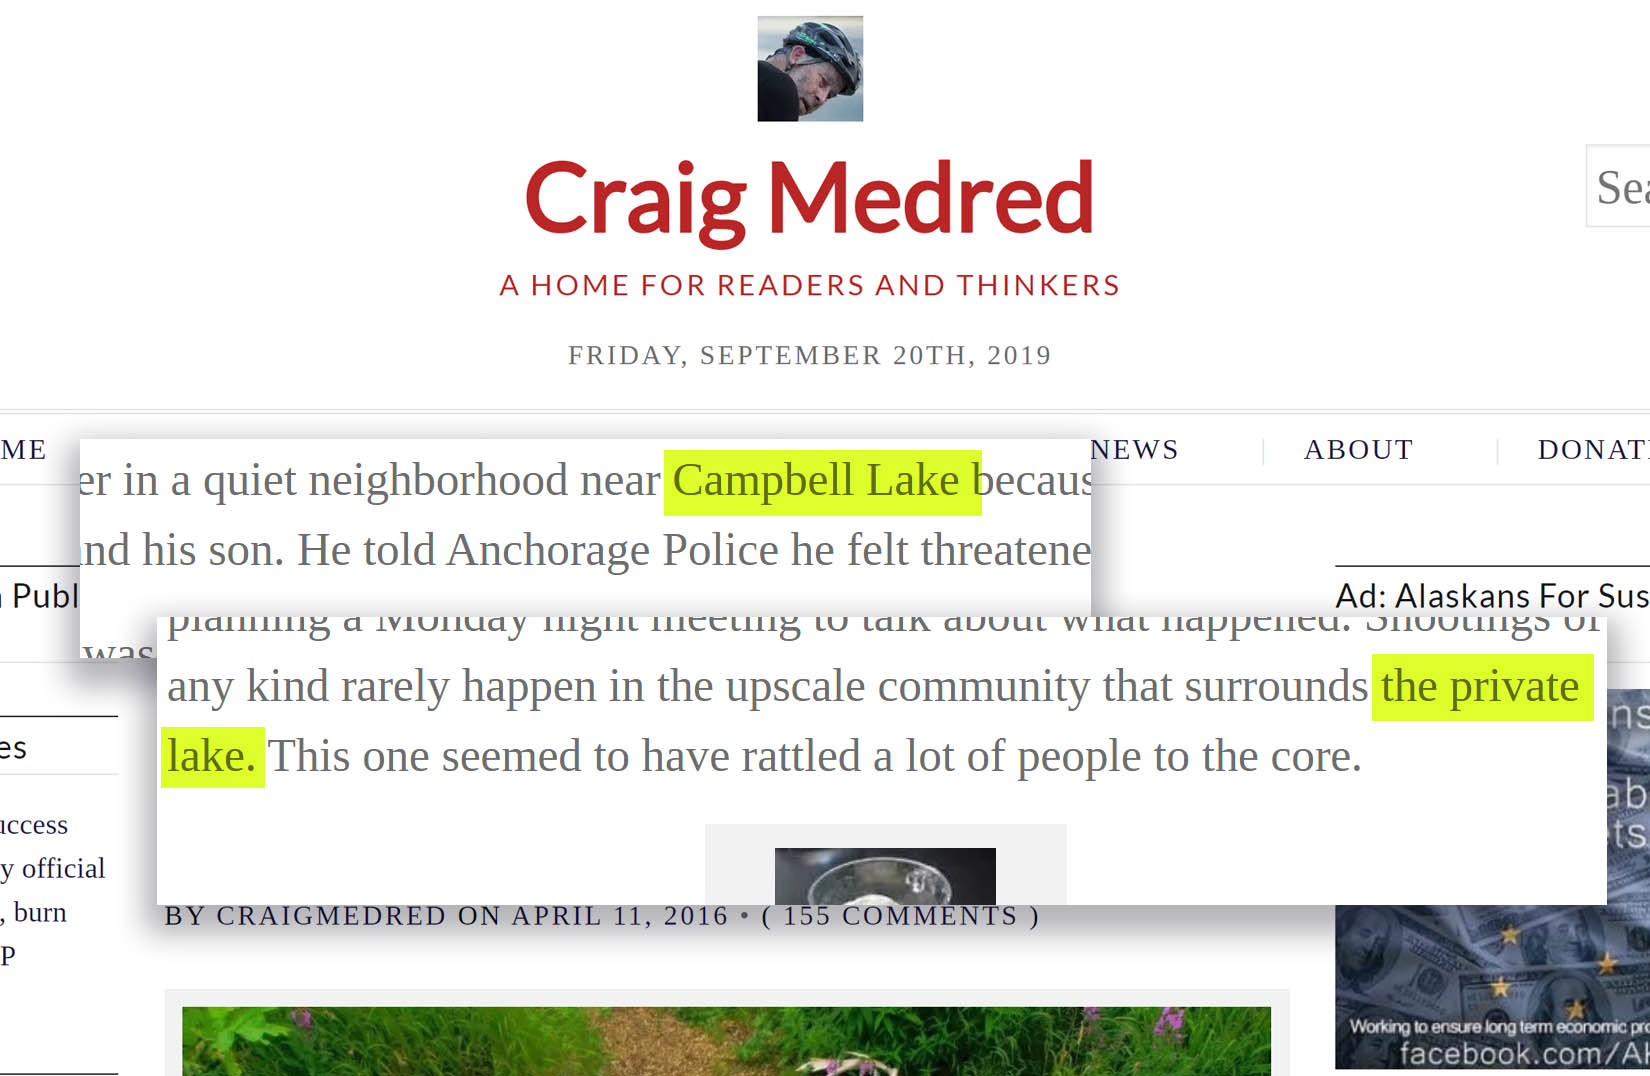 Craig Medred article screenshots describing Campbell Lake as a 'private lake.'